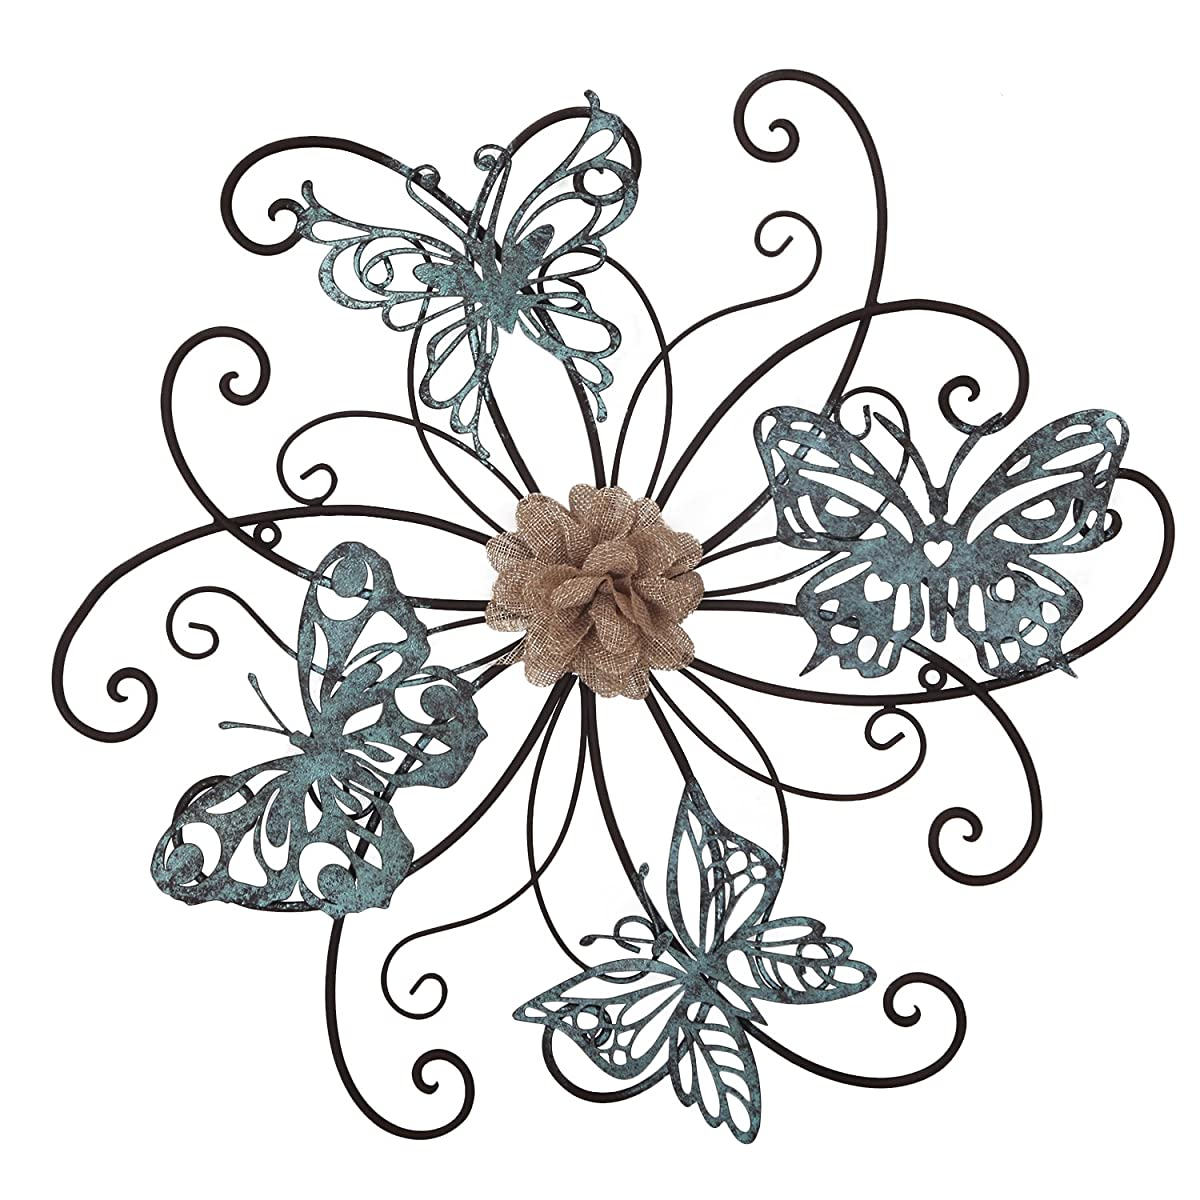 Homes Art Flower and Butterfly Urban Design Metal Wall Decor for Nature Home Art Decoration & Kitchen Gifts